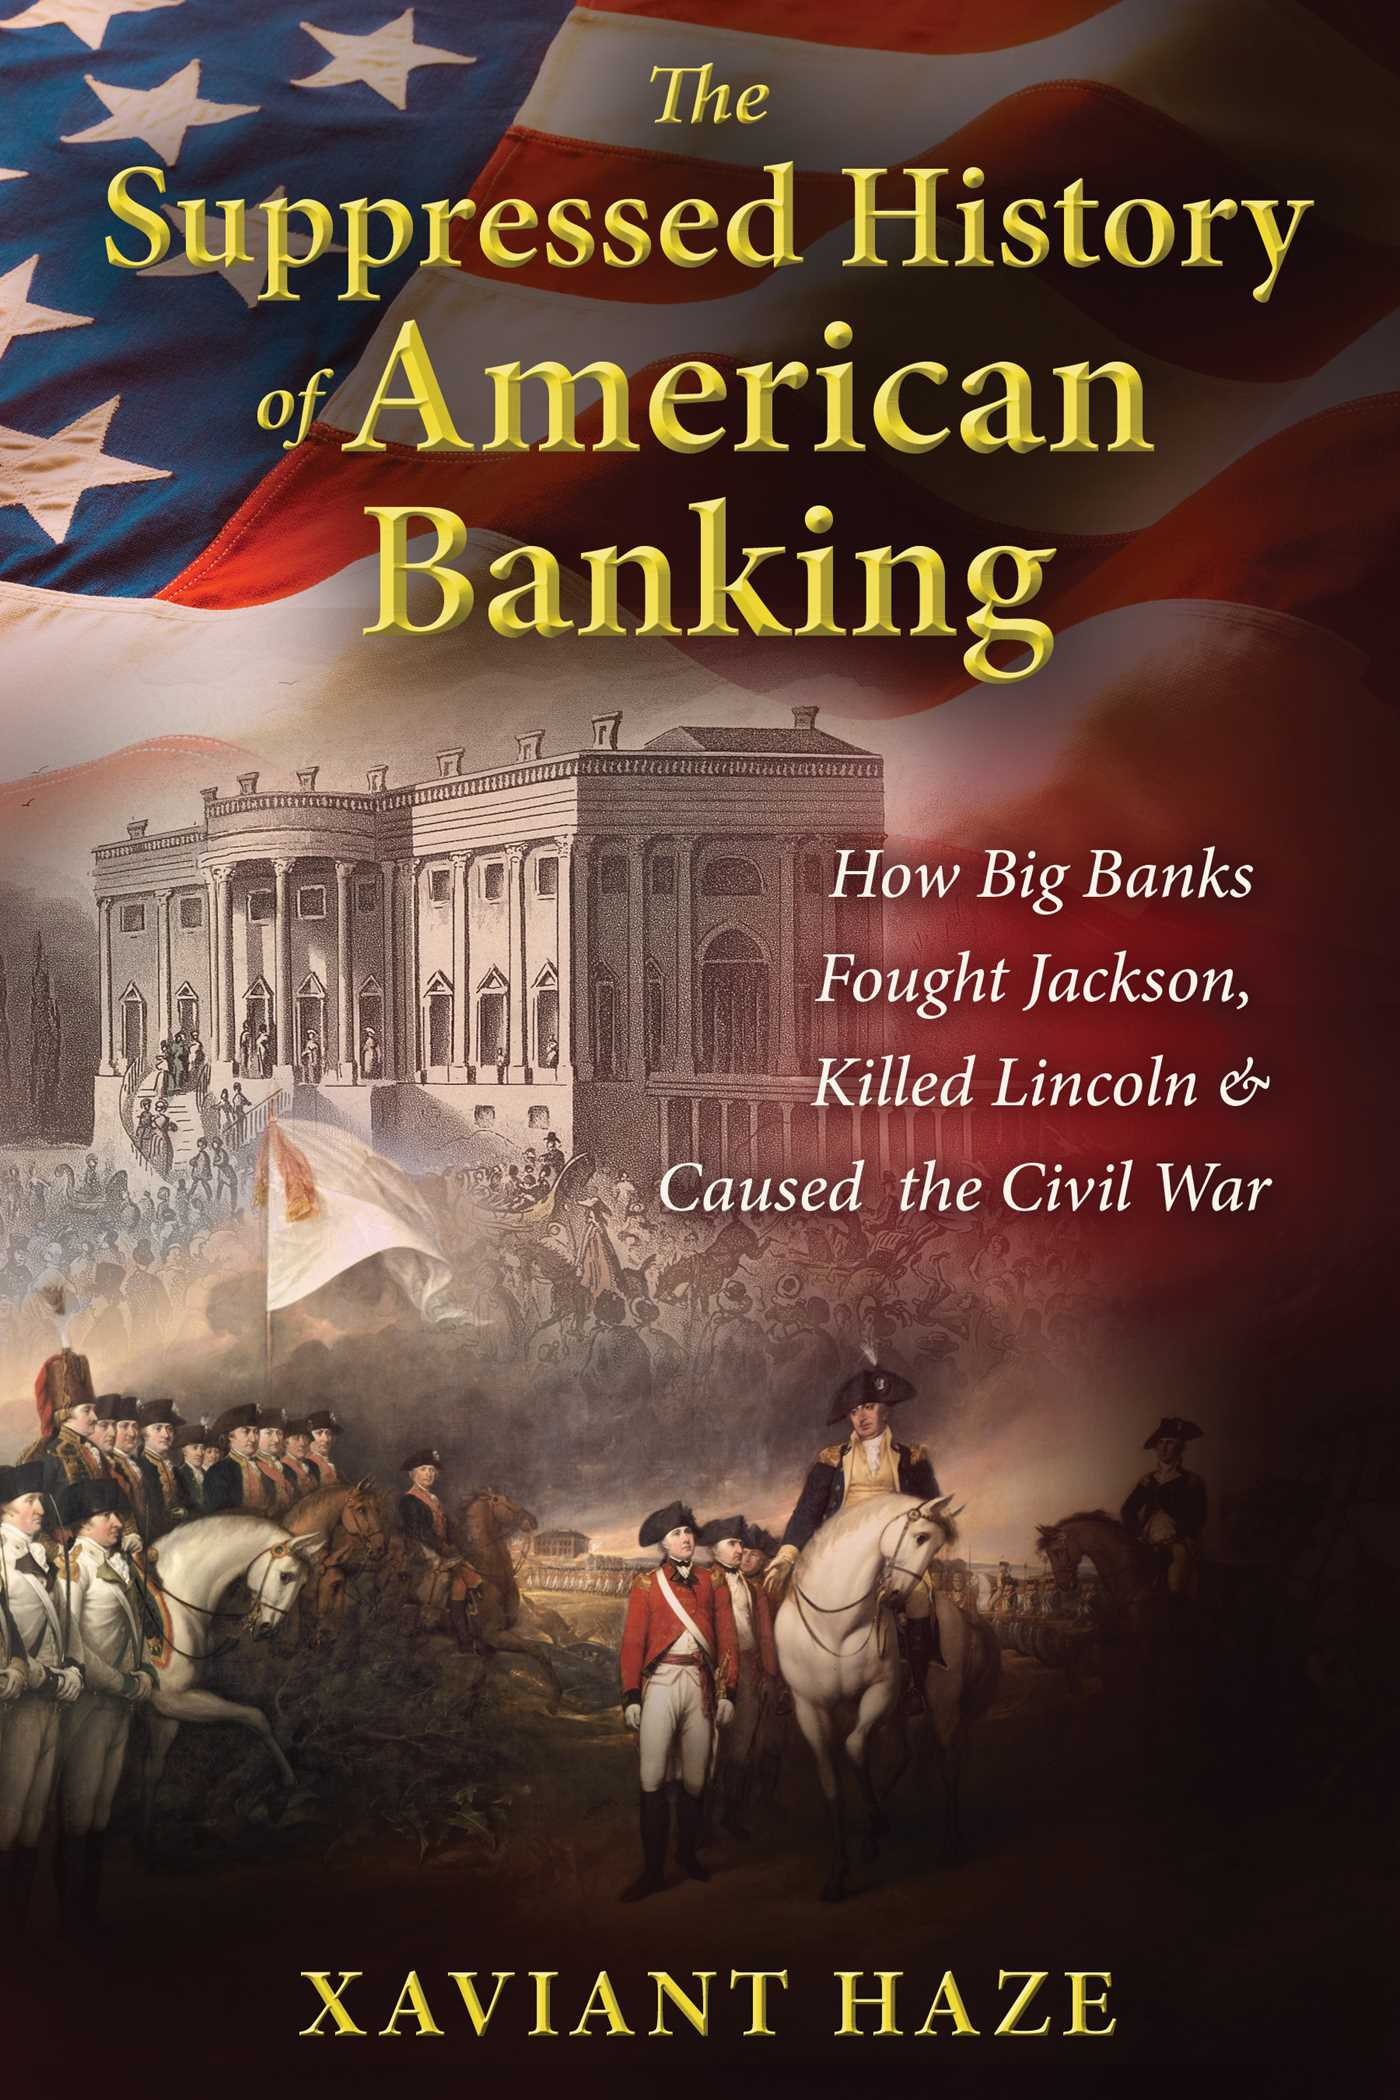 The suppressed history of american banking 9781591432333 hr